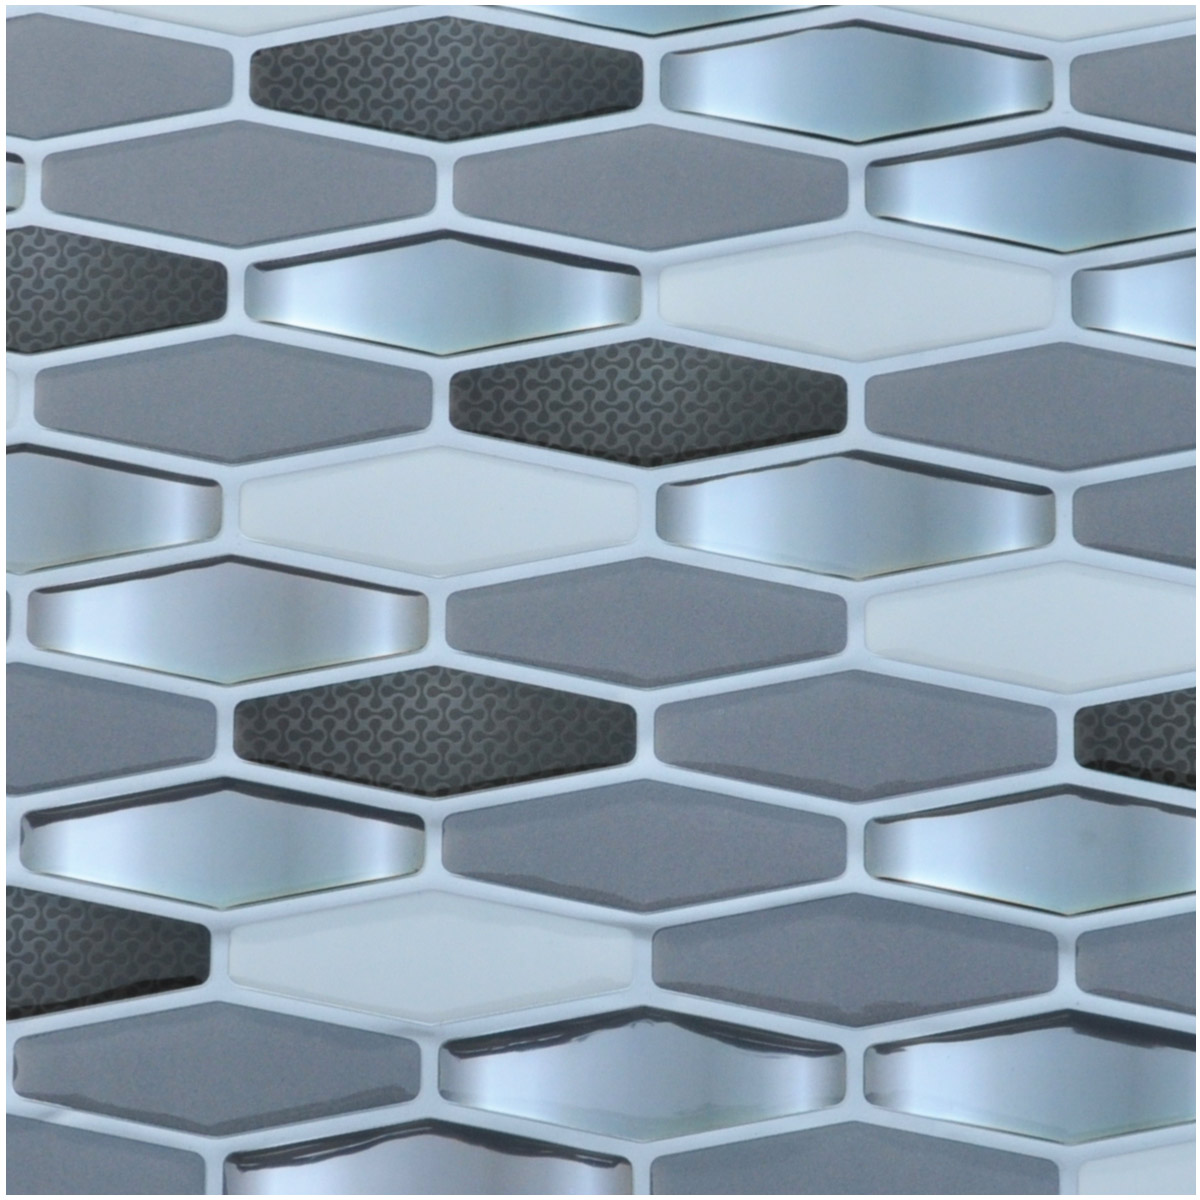 Diamond Wall Tile Peel and Stick Backsplash Sticker, Set of 6